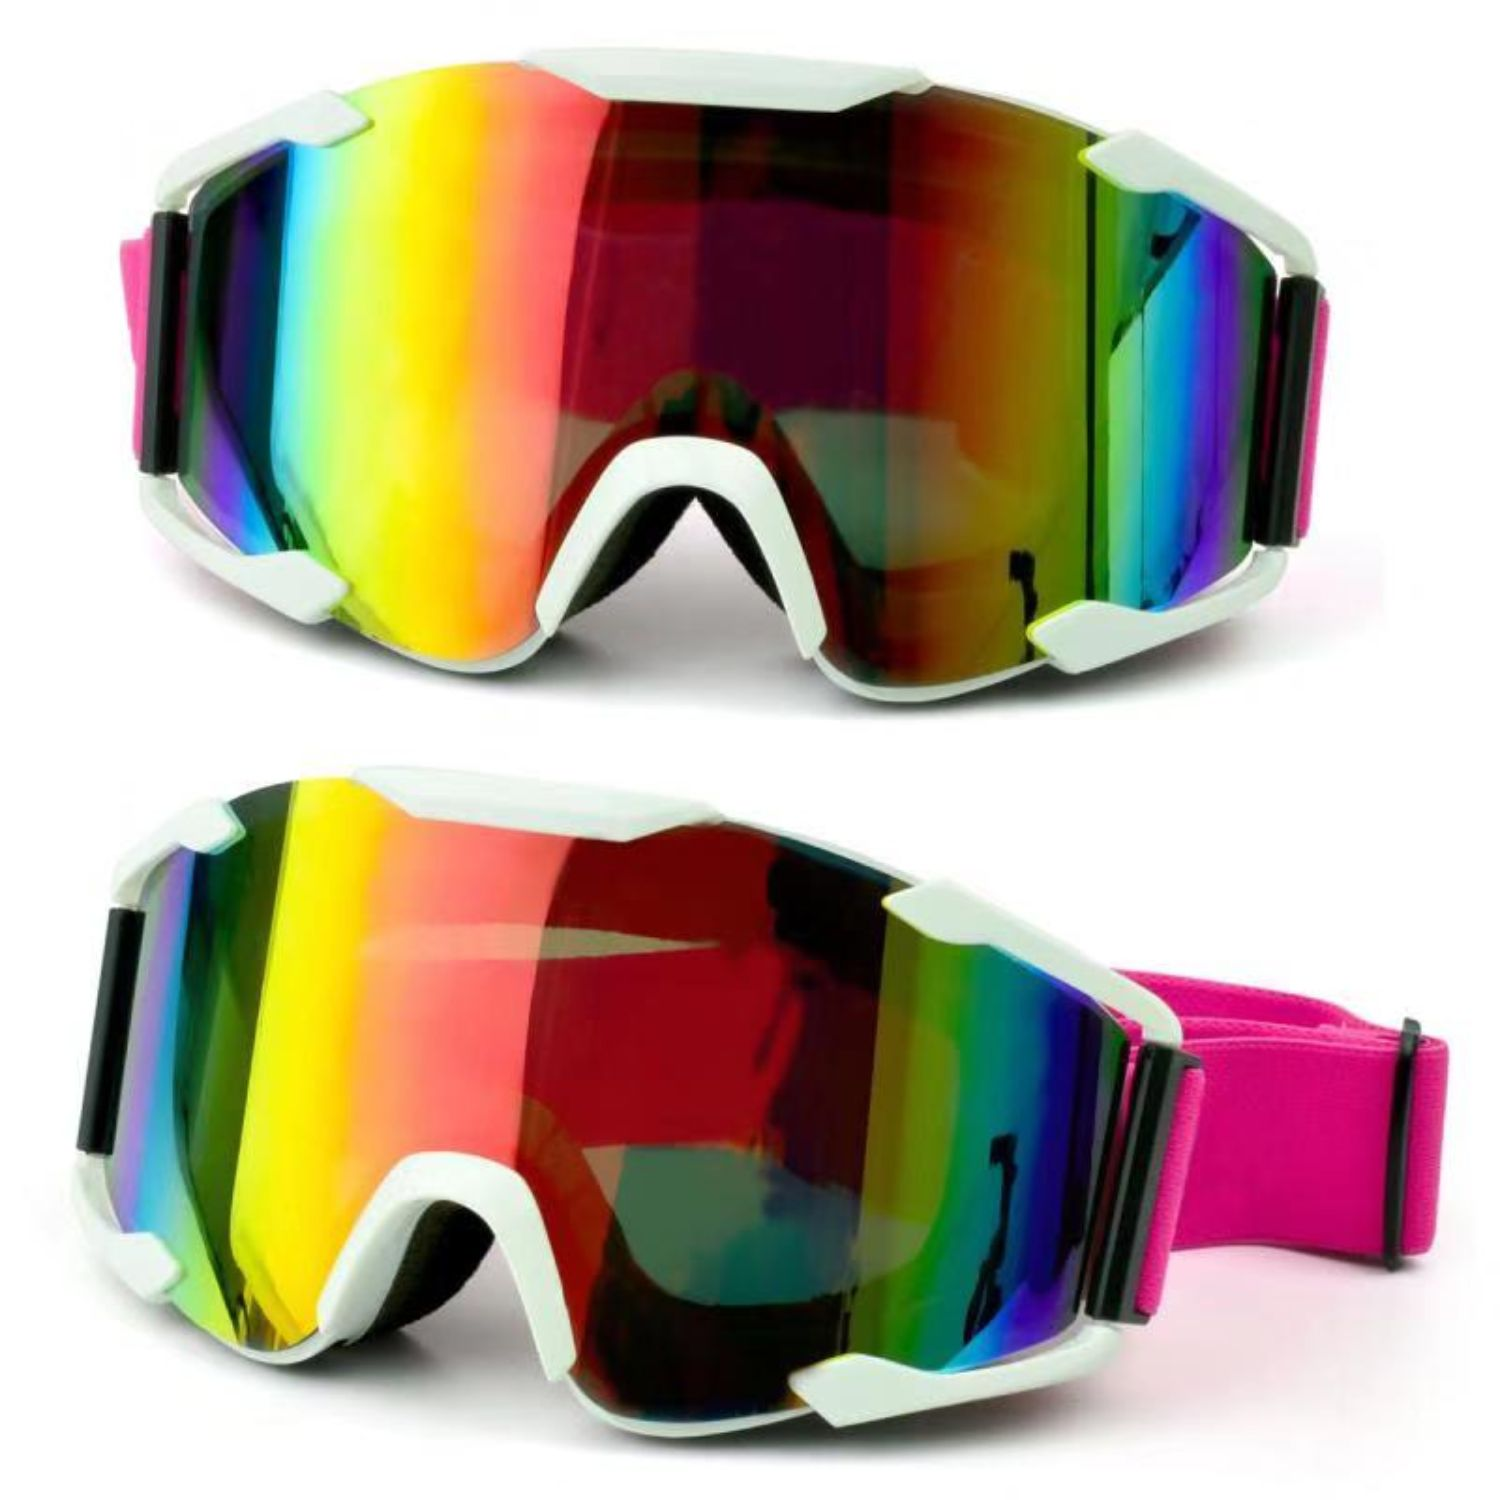 SG05 - Ski Snowboard Goggles for Men and Women with UV Protection - Iris Fashion Inc. | Wholesale Sunglasses and Glasses